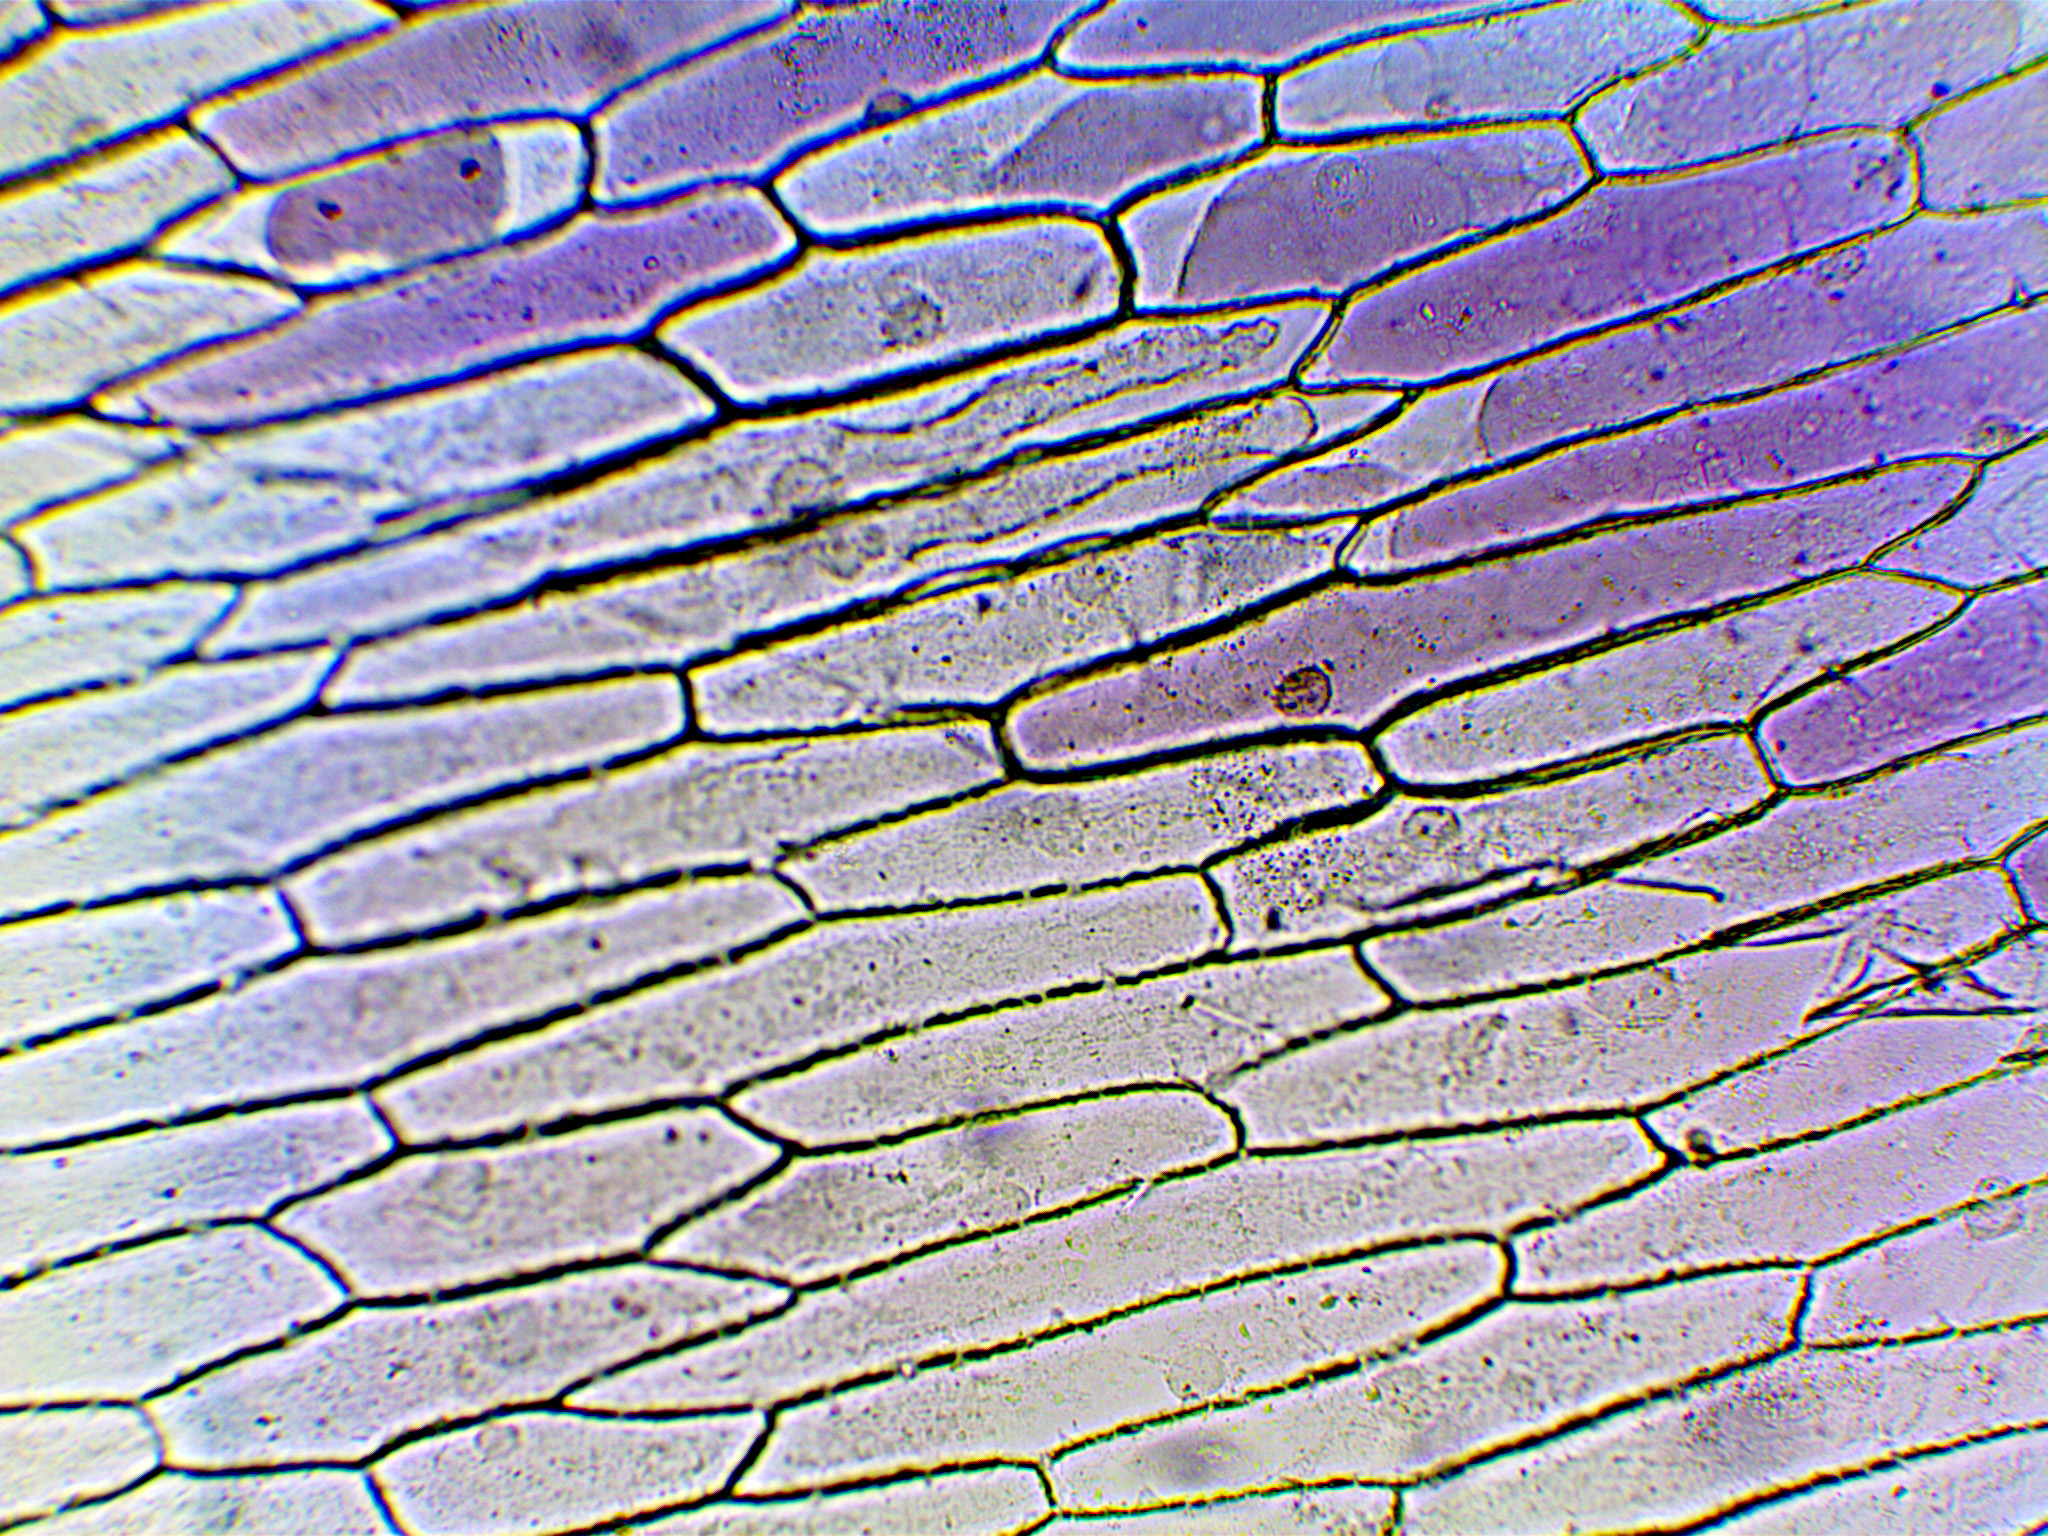 Onion cells magnified 100 times